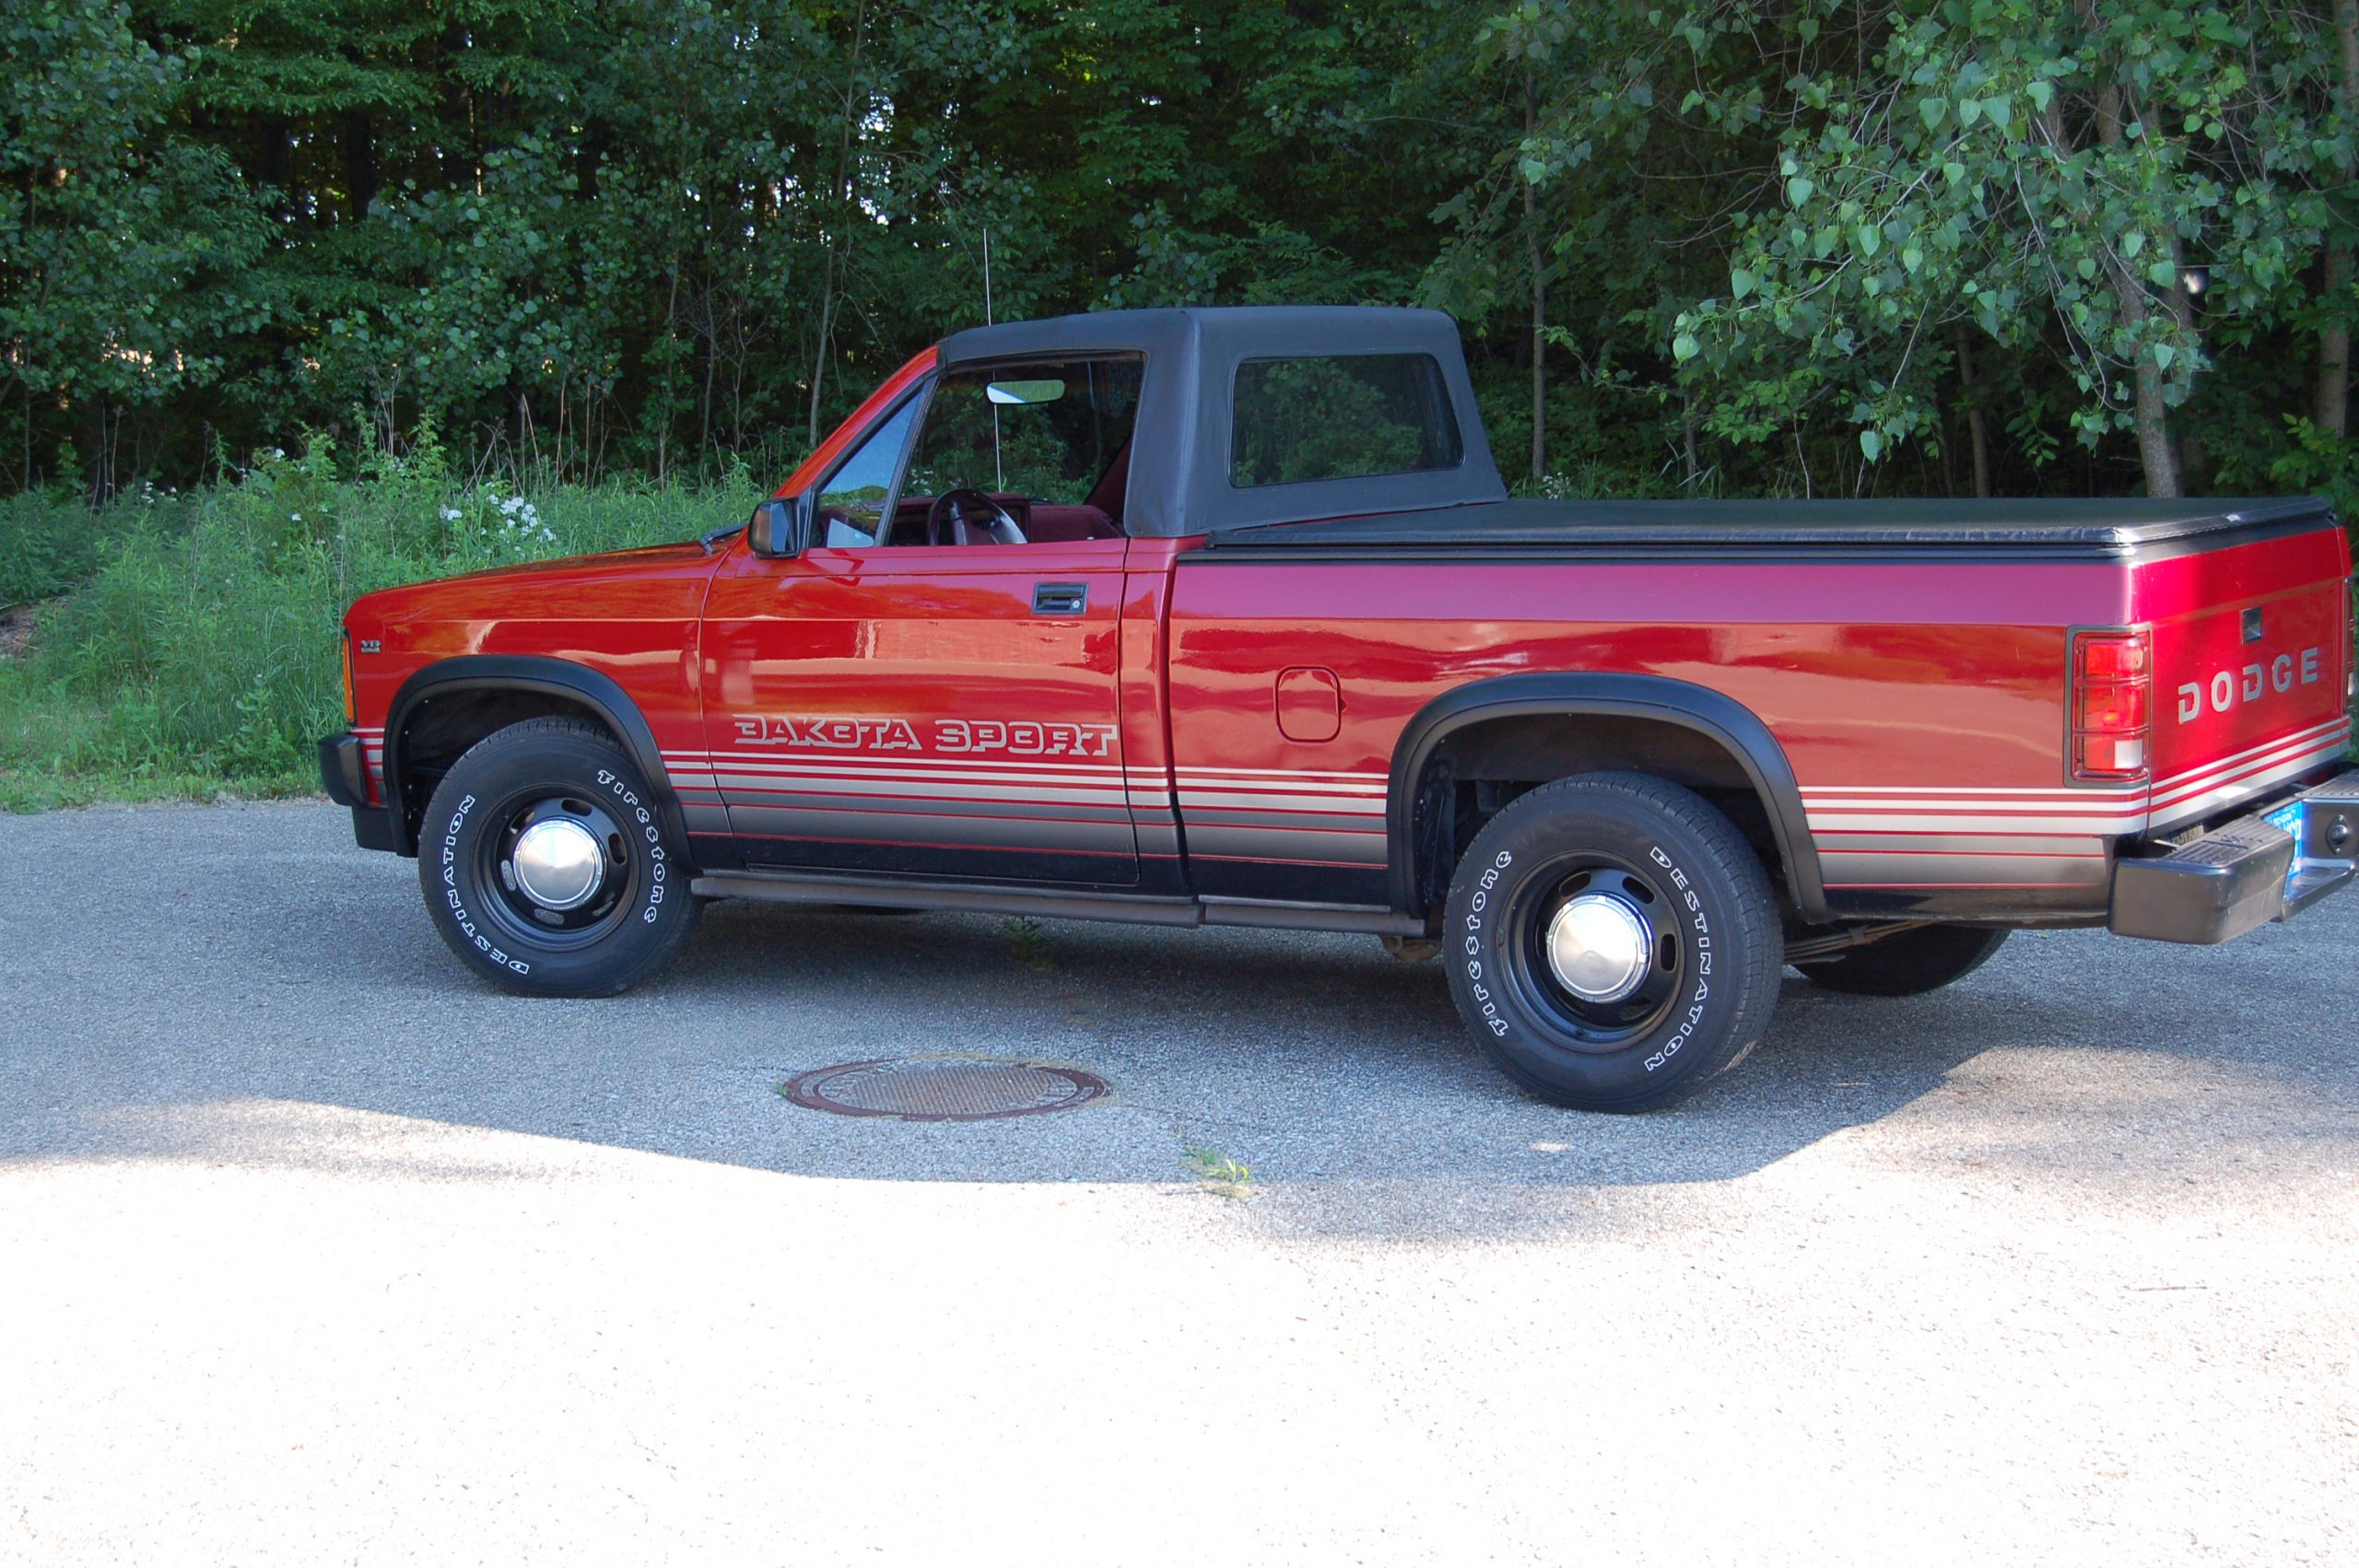 1989 Dodge Dakota Sport Convertible top up side profile